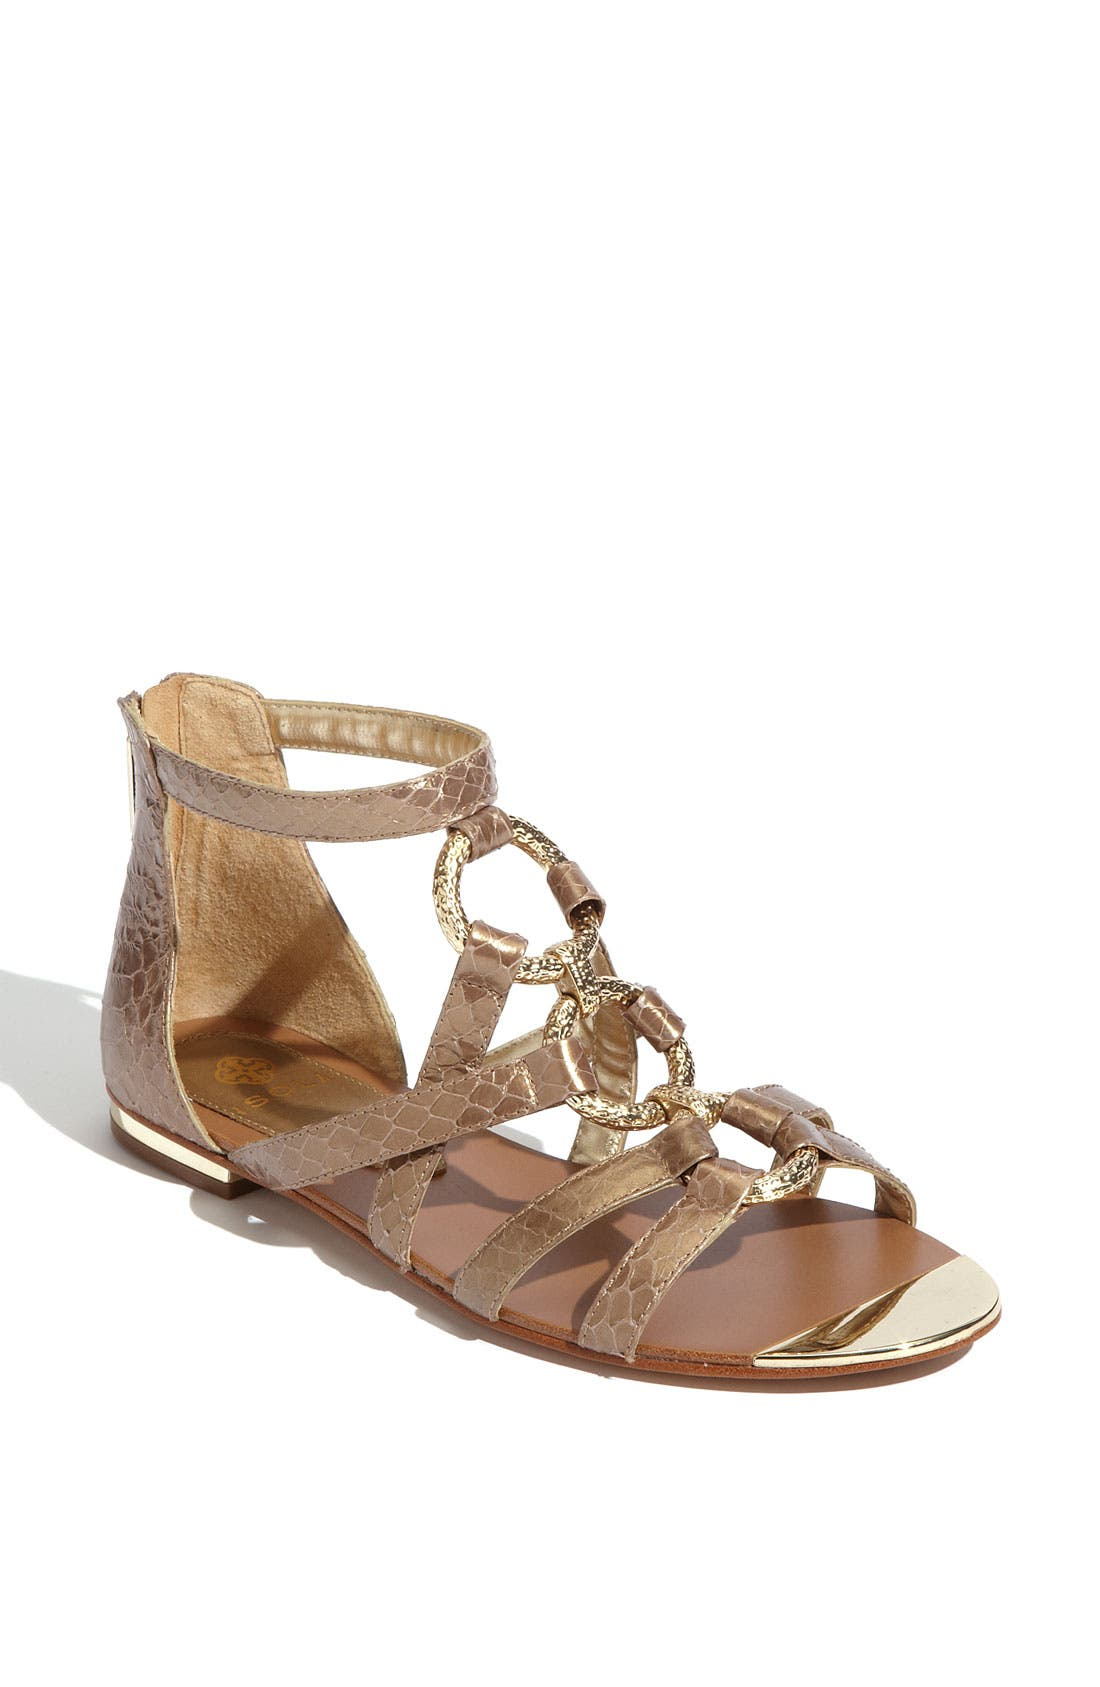 'Adriel' Flat Sandal,                             Main thumbnail 1, color,                             Gold Snake